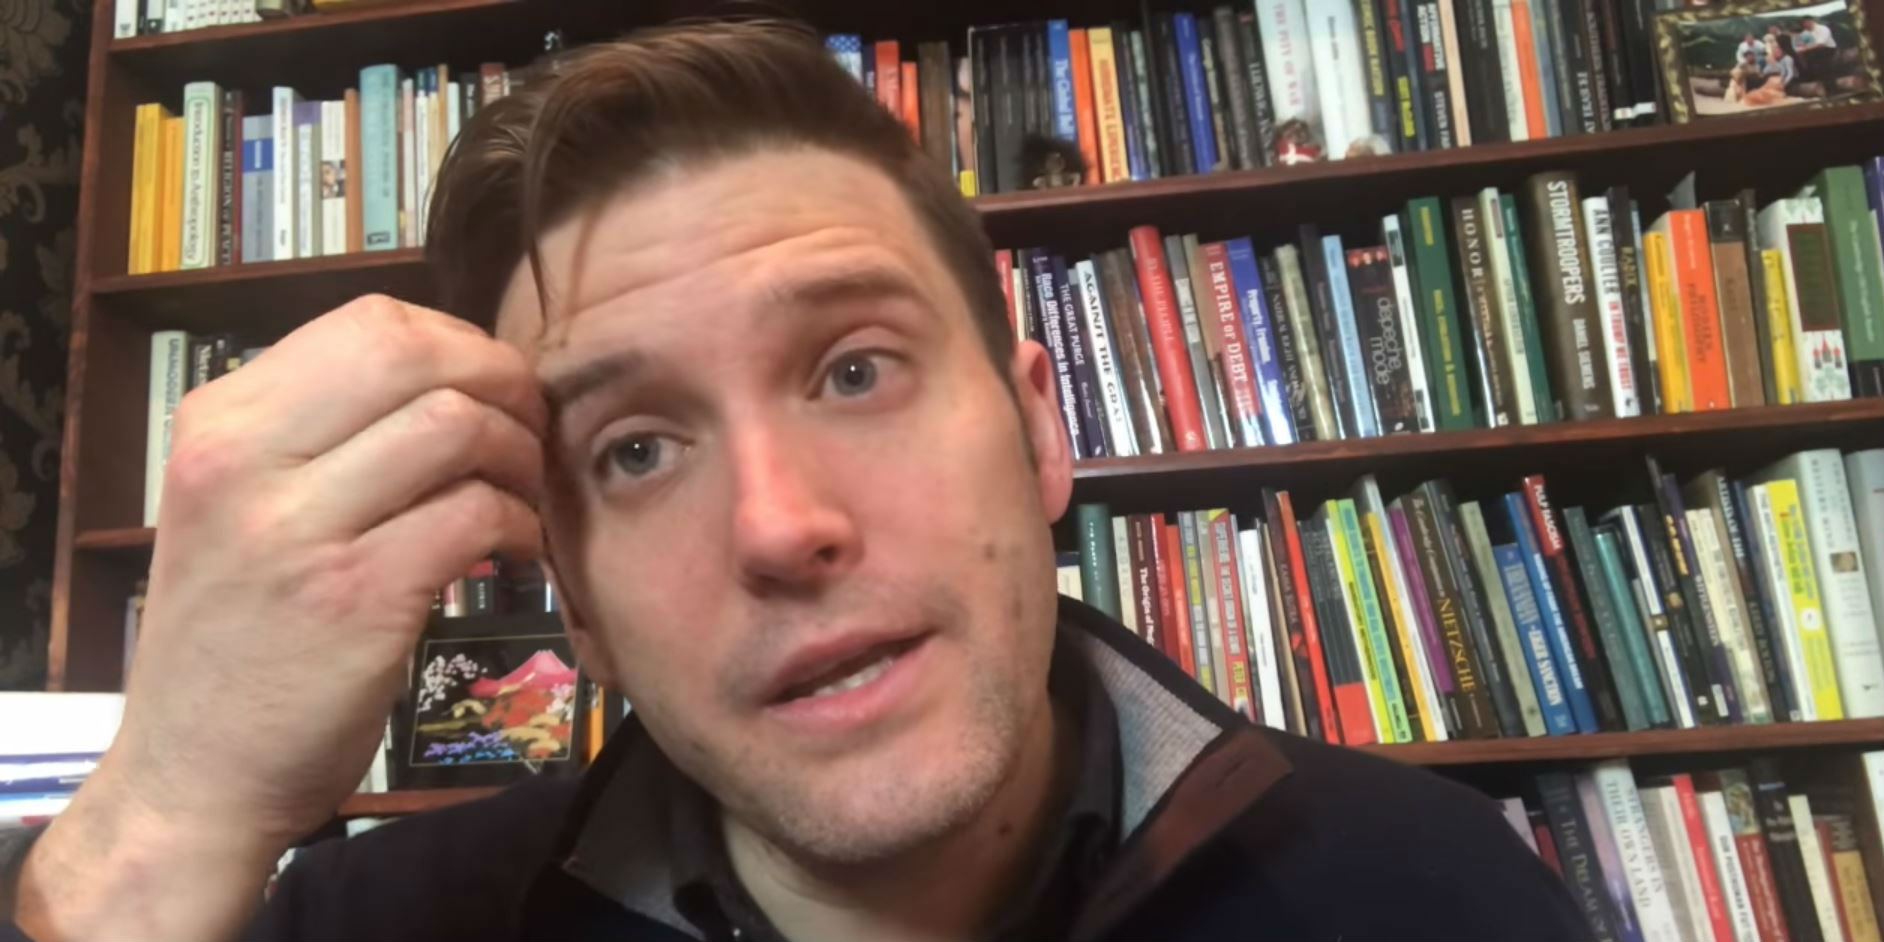 richard spencer alt-right white nationalist leader